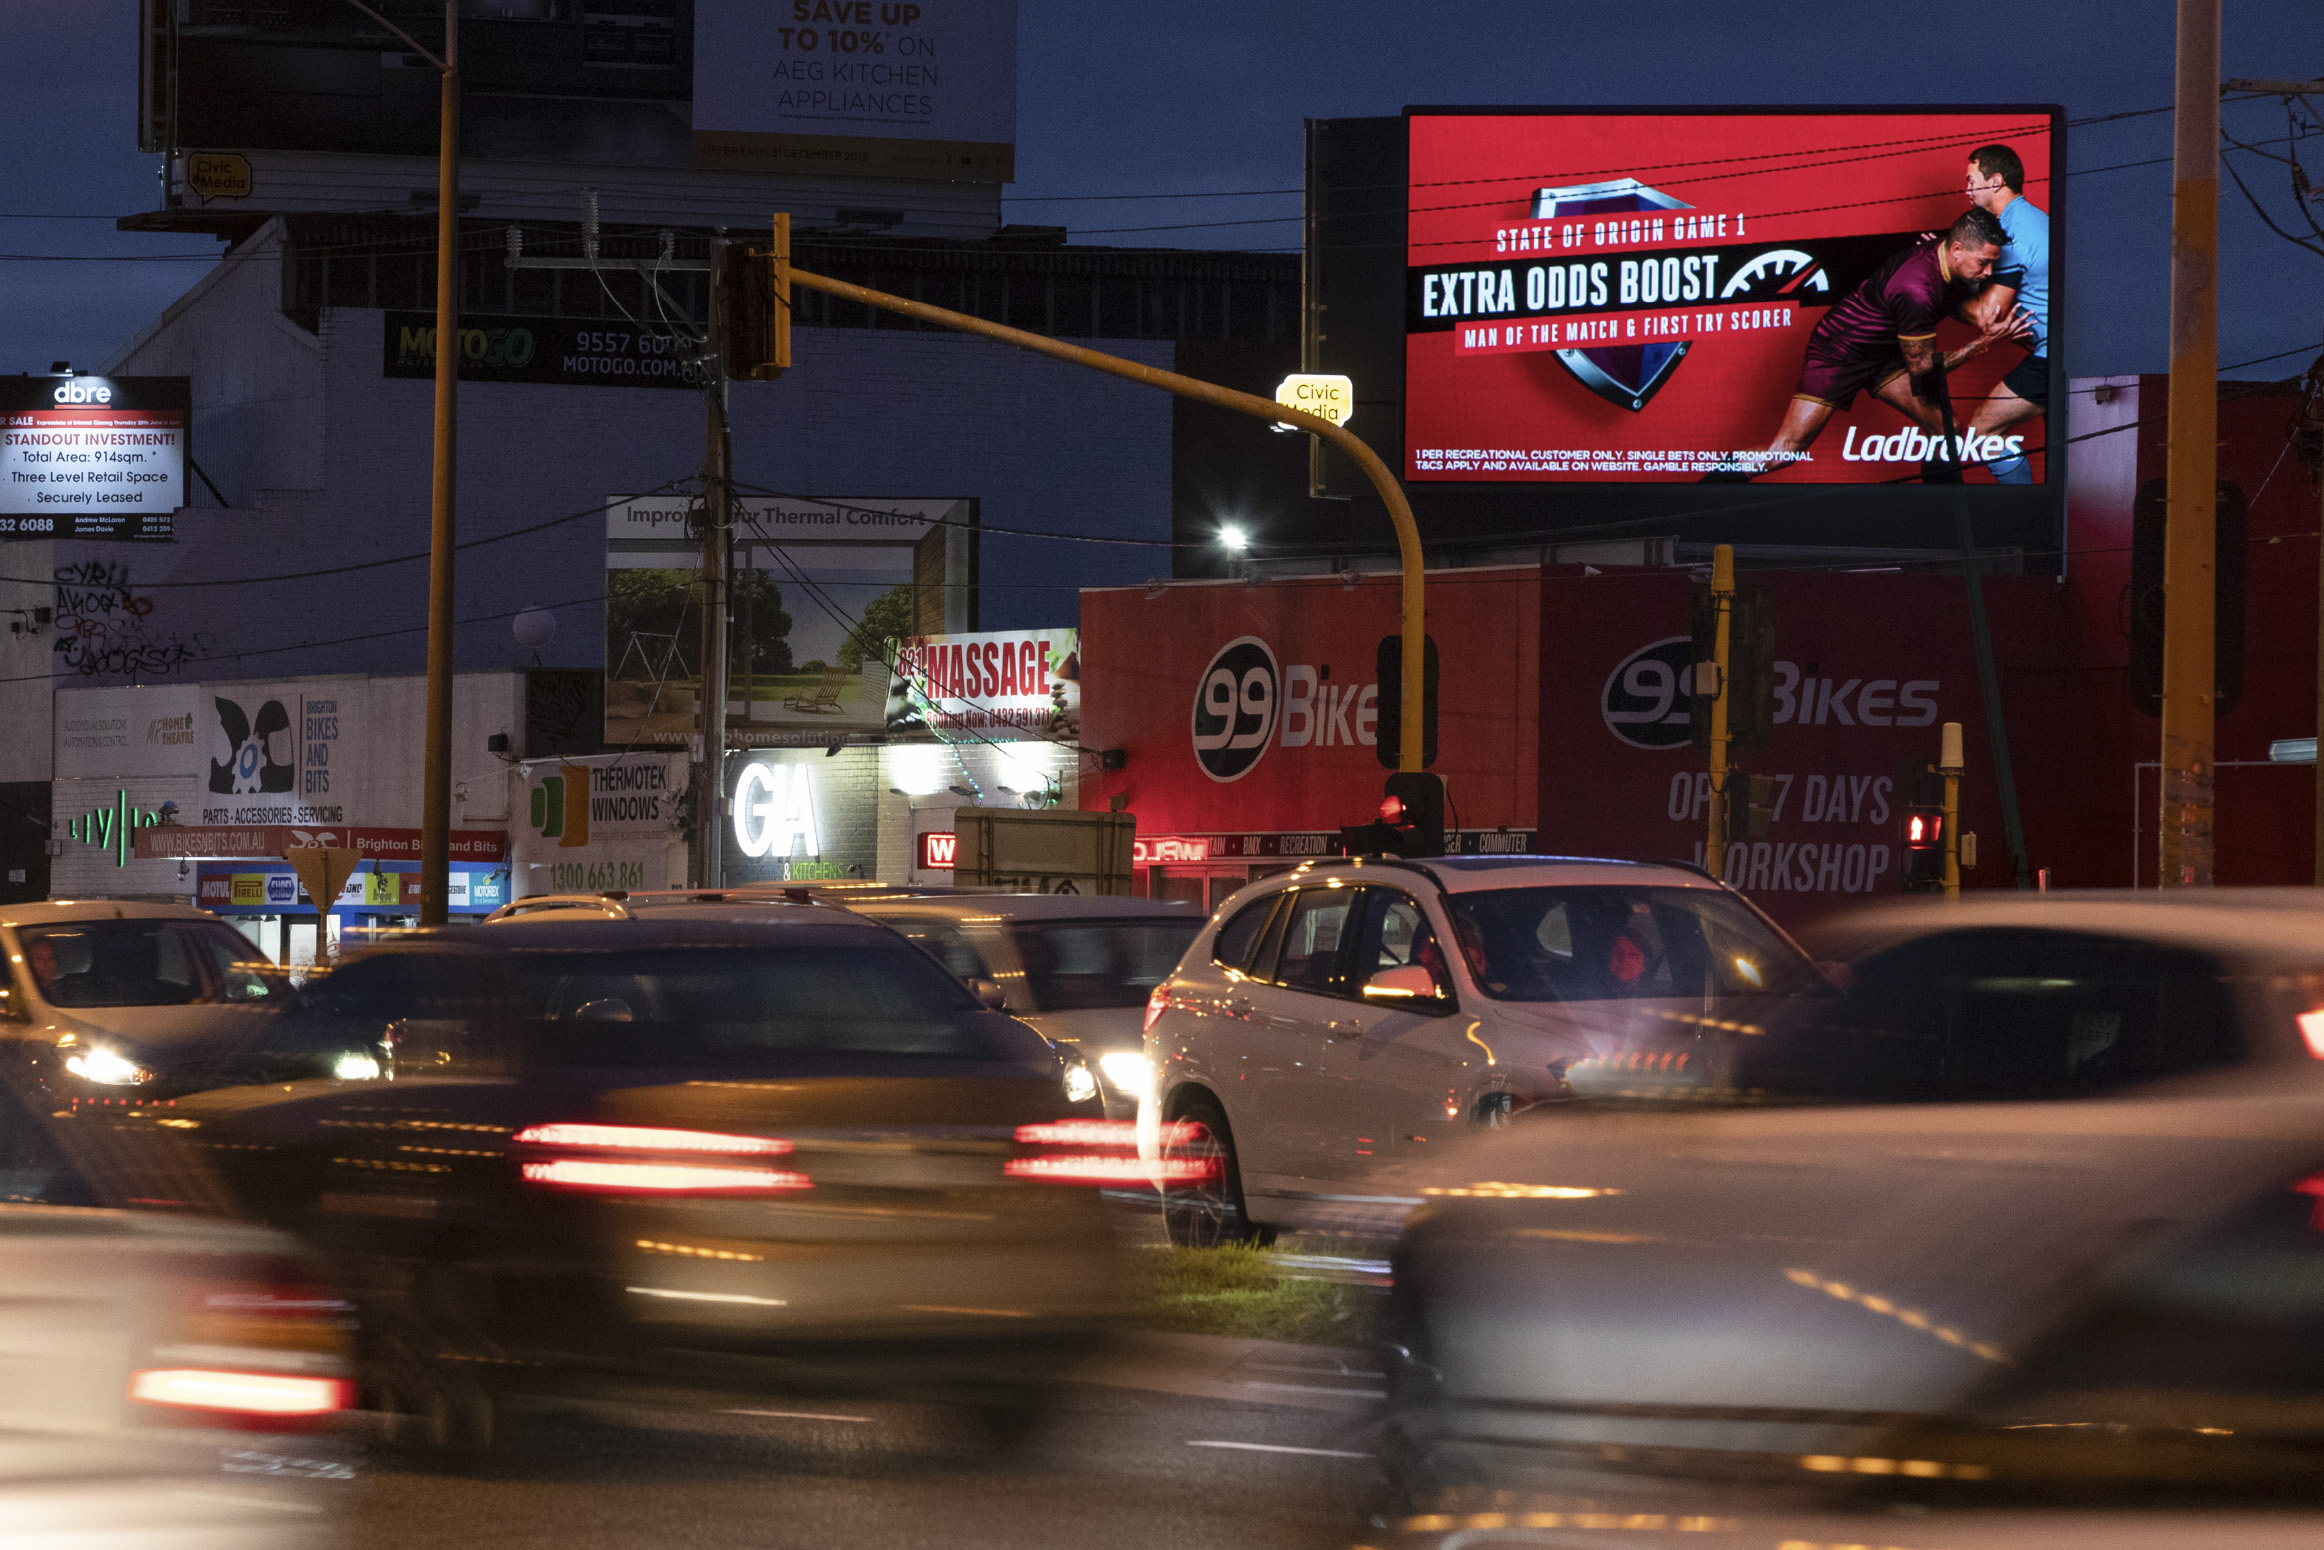 With Outdoor Advertising Location is Everything